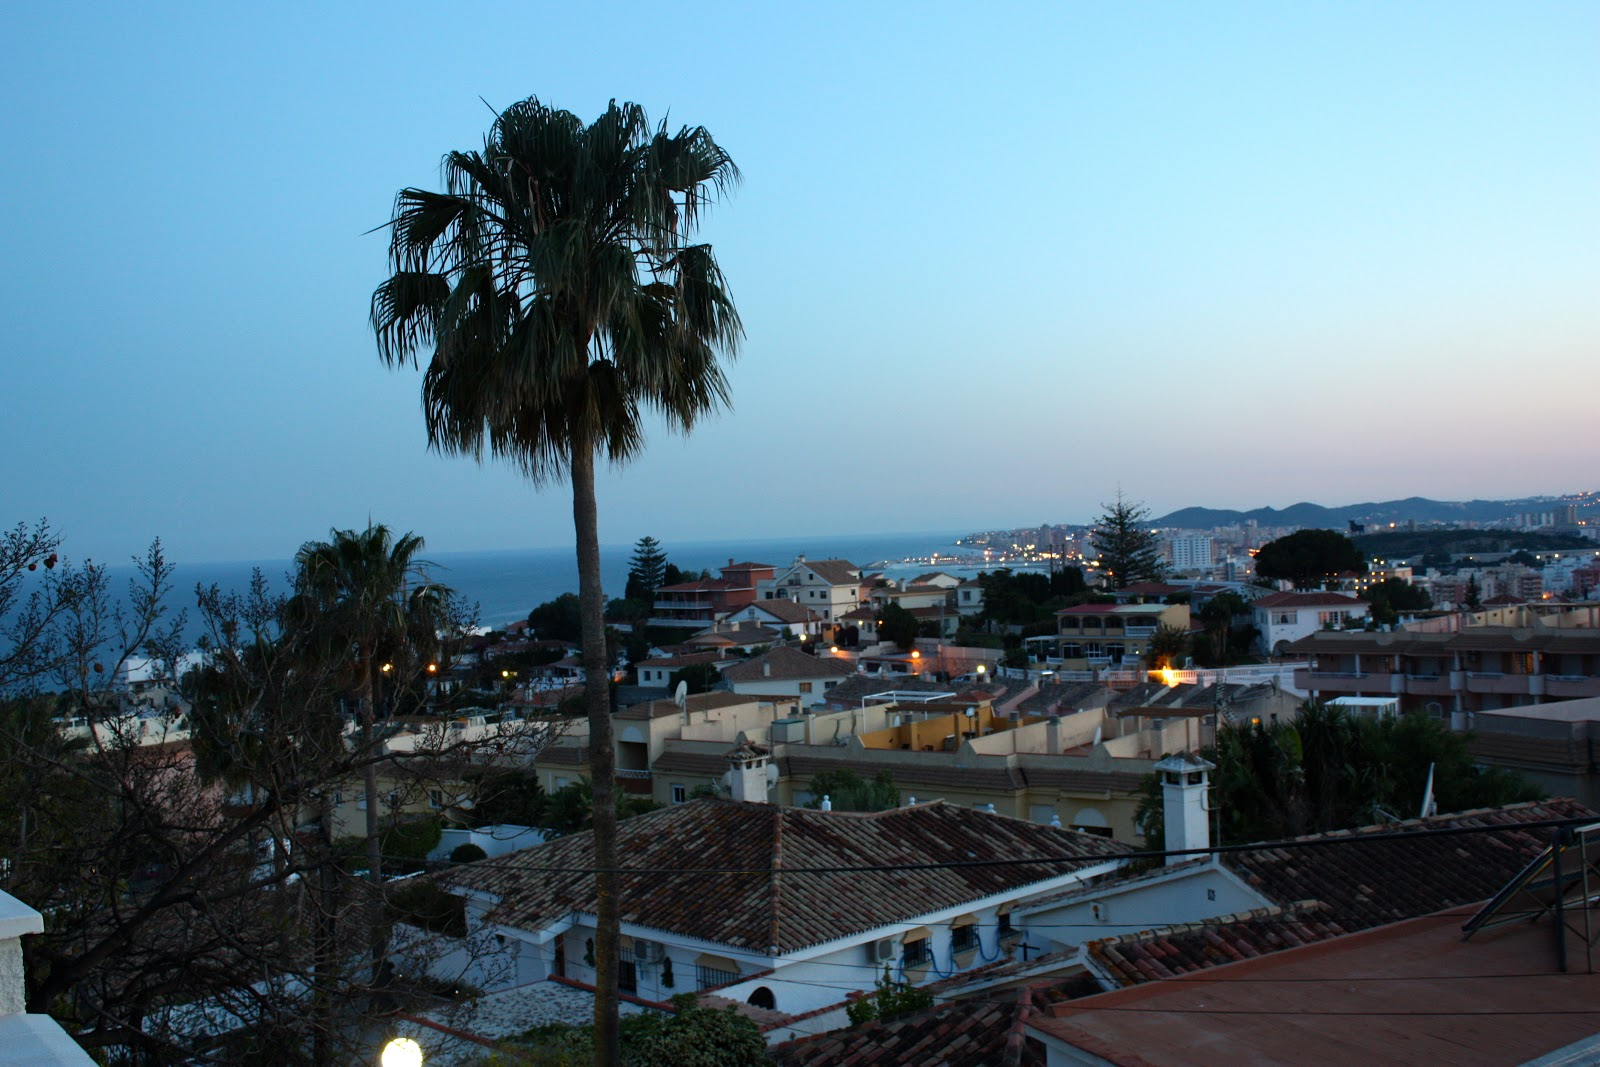 Andalucian night